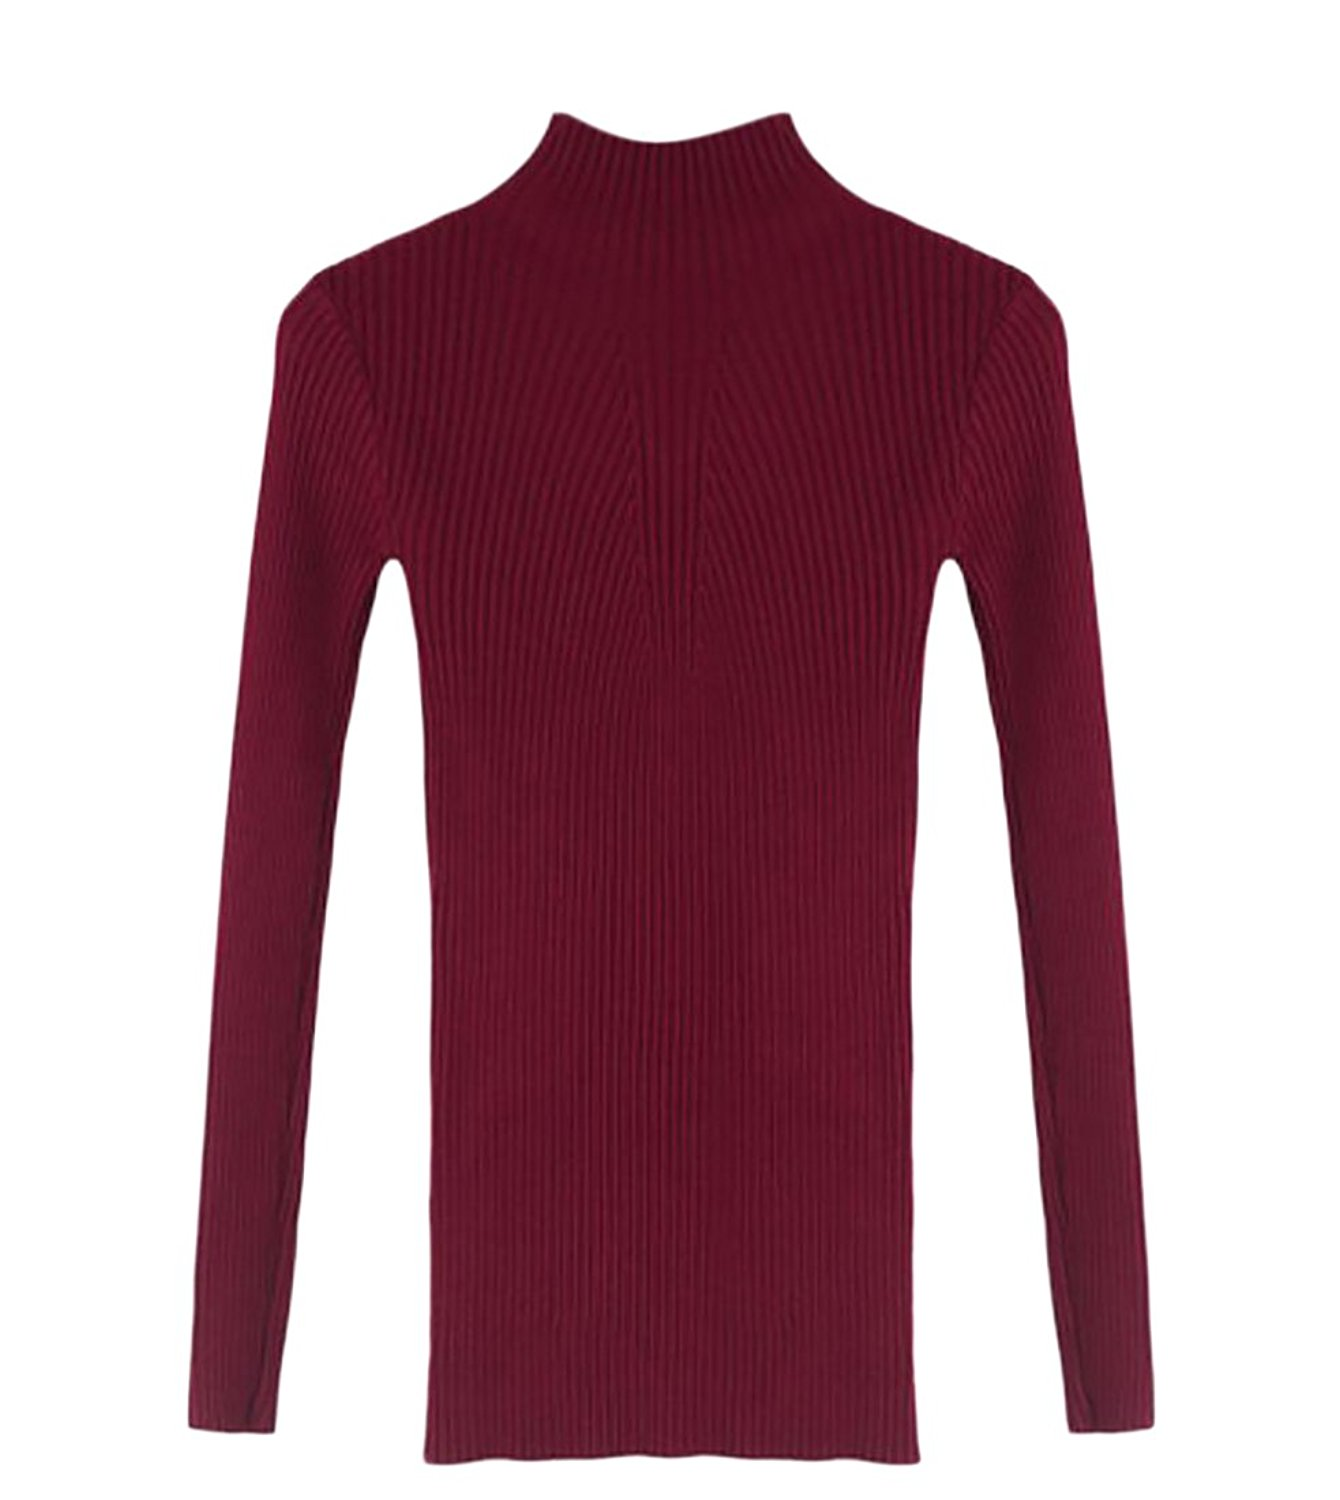 UUYUK Womens Turtle Neck Solid Long Sleeve Slim Fit Knit Autumn Sweater